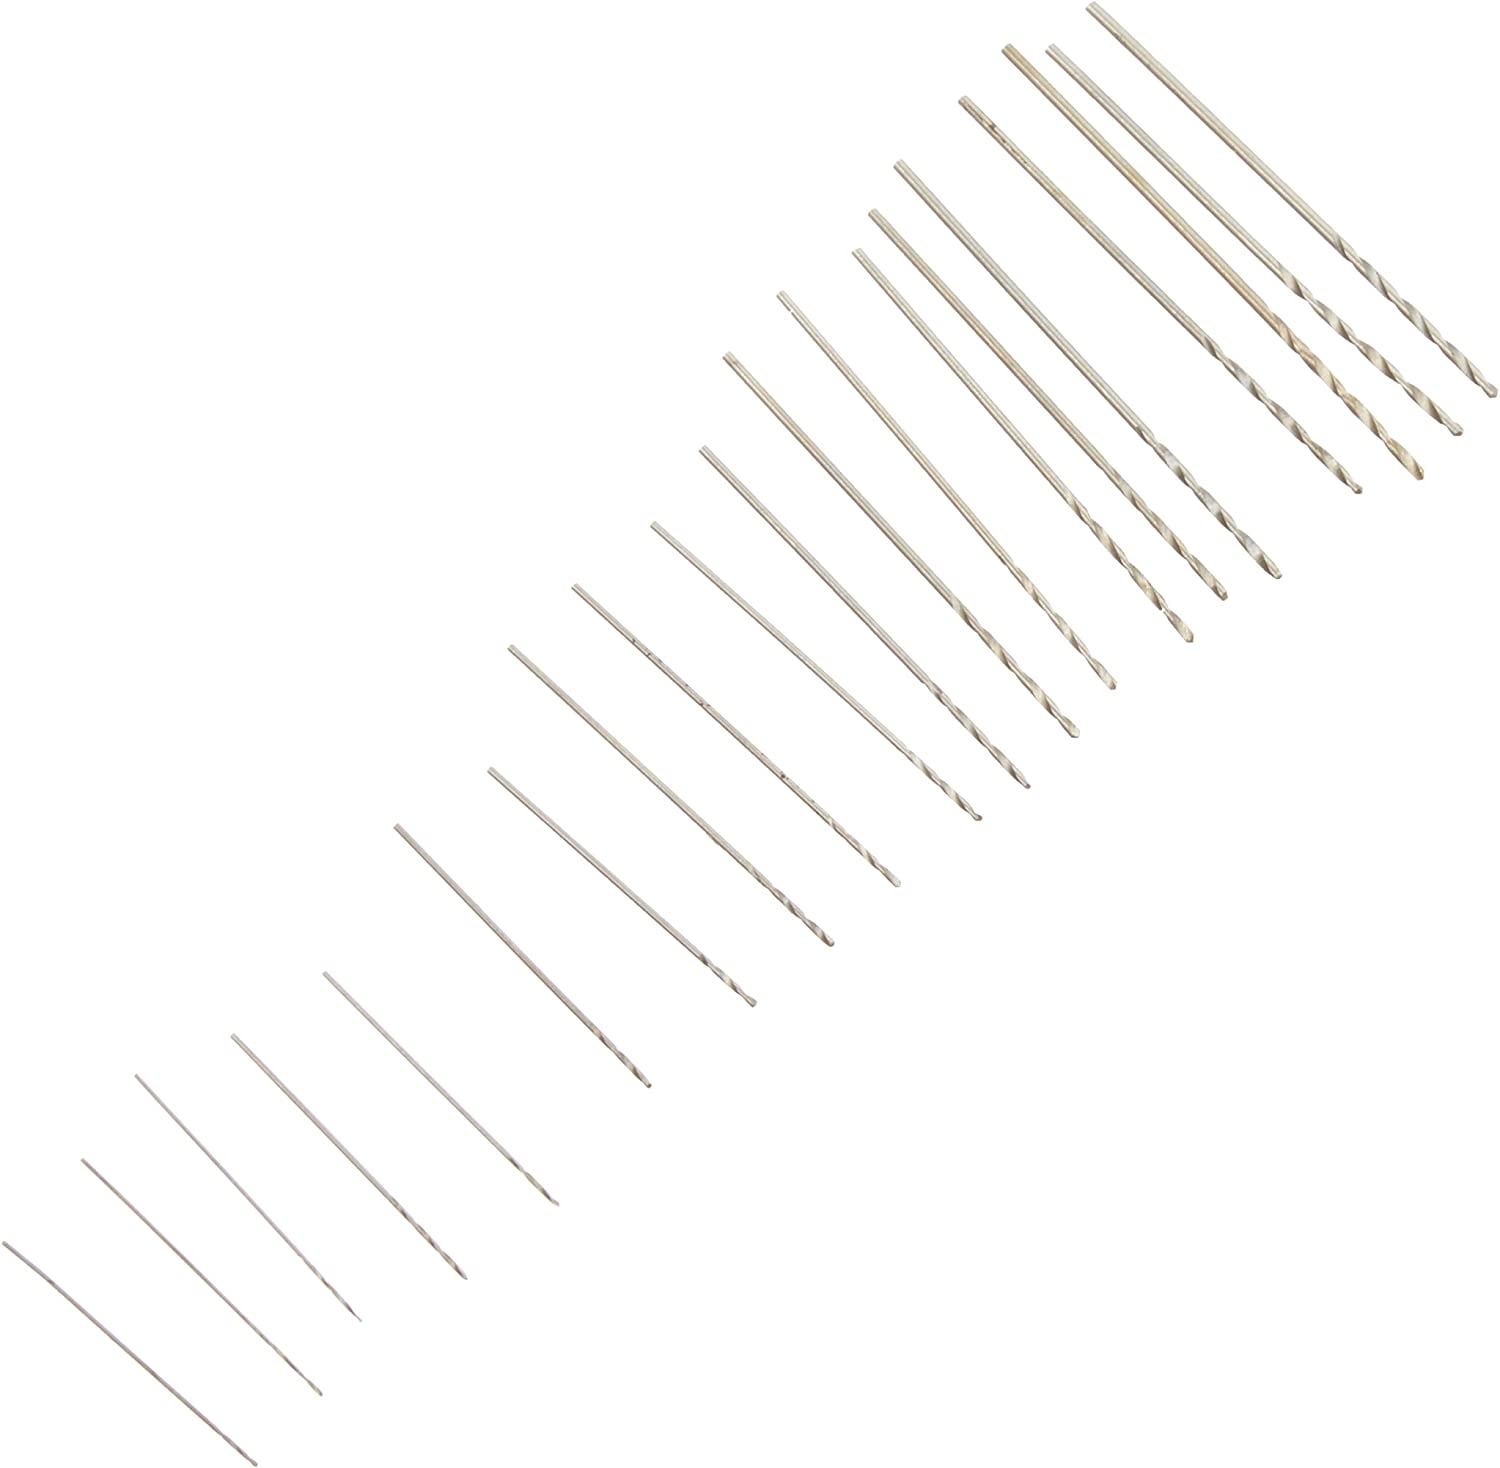 Kaufhof 06-00090 20 piece Tiny Small Drill Bits #61-80 Numbered Sizes High Speed Steel HSS Wire Gauge